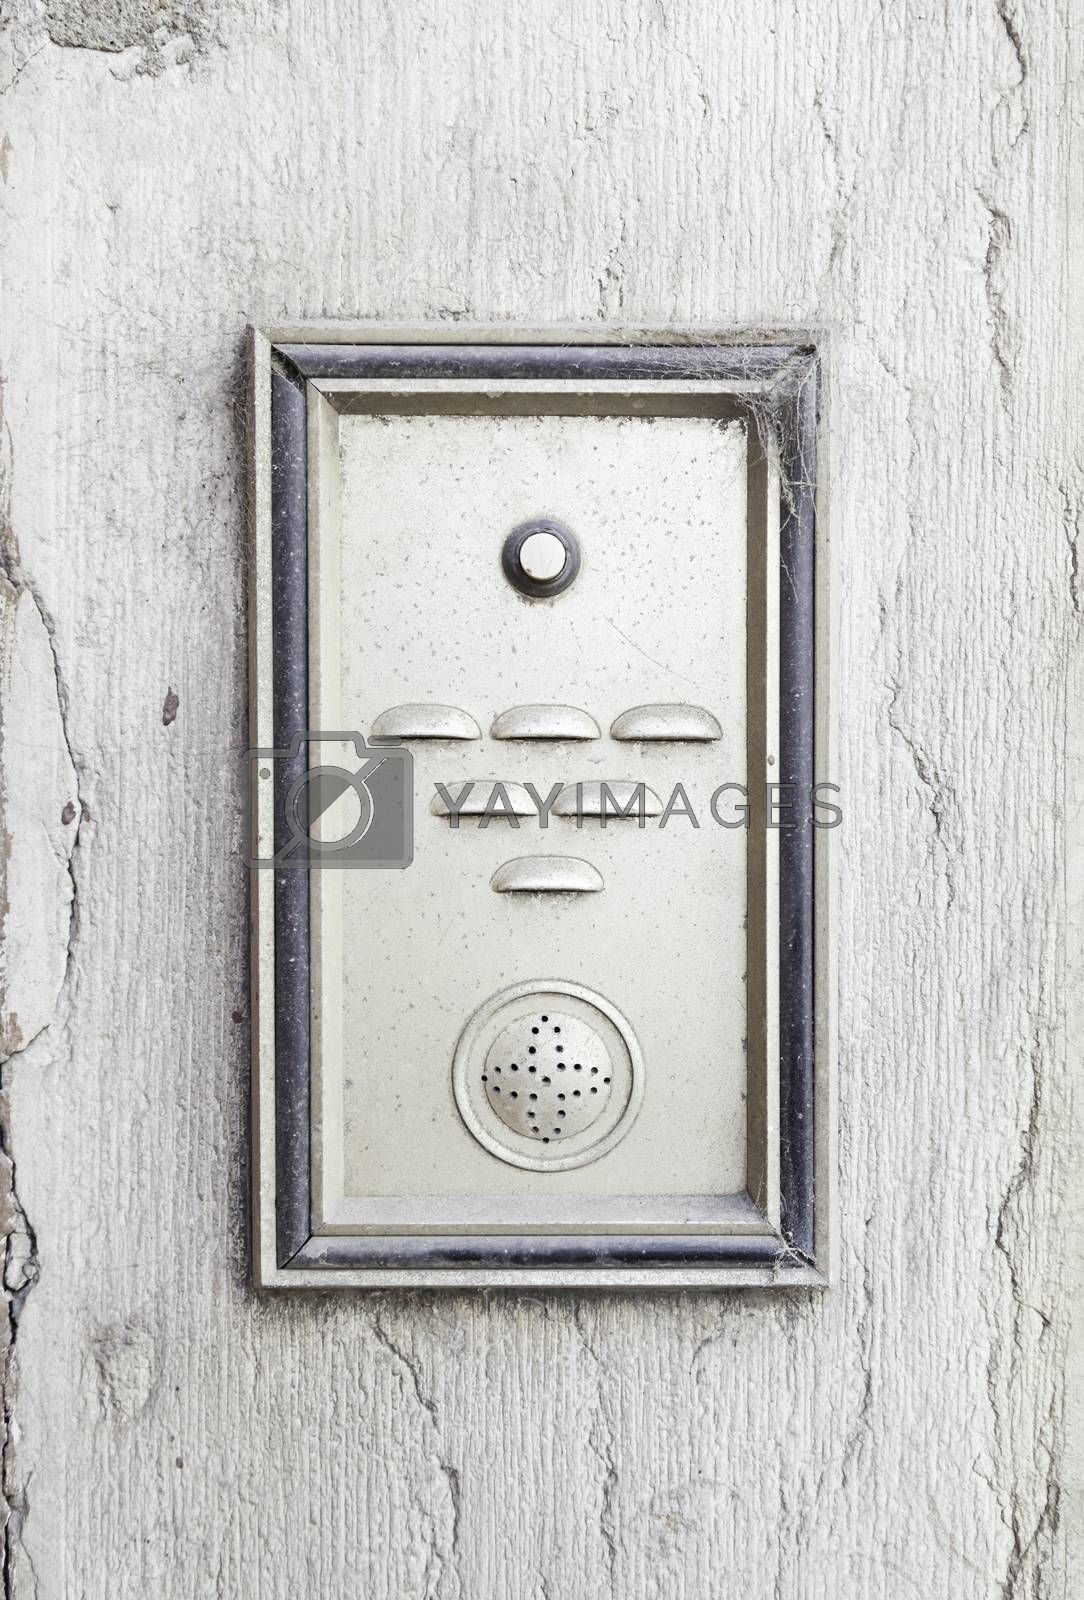 Old intercom in a house, detail of a electric apparatus in the facade of a building